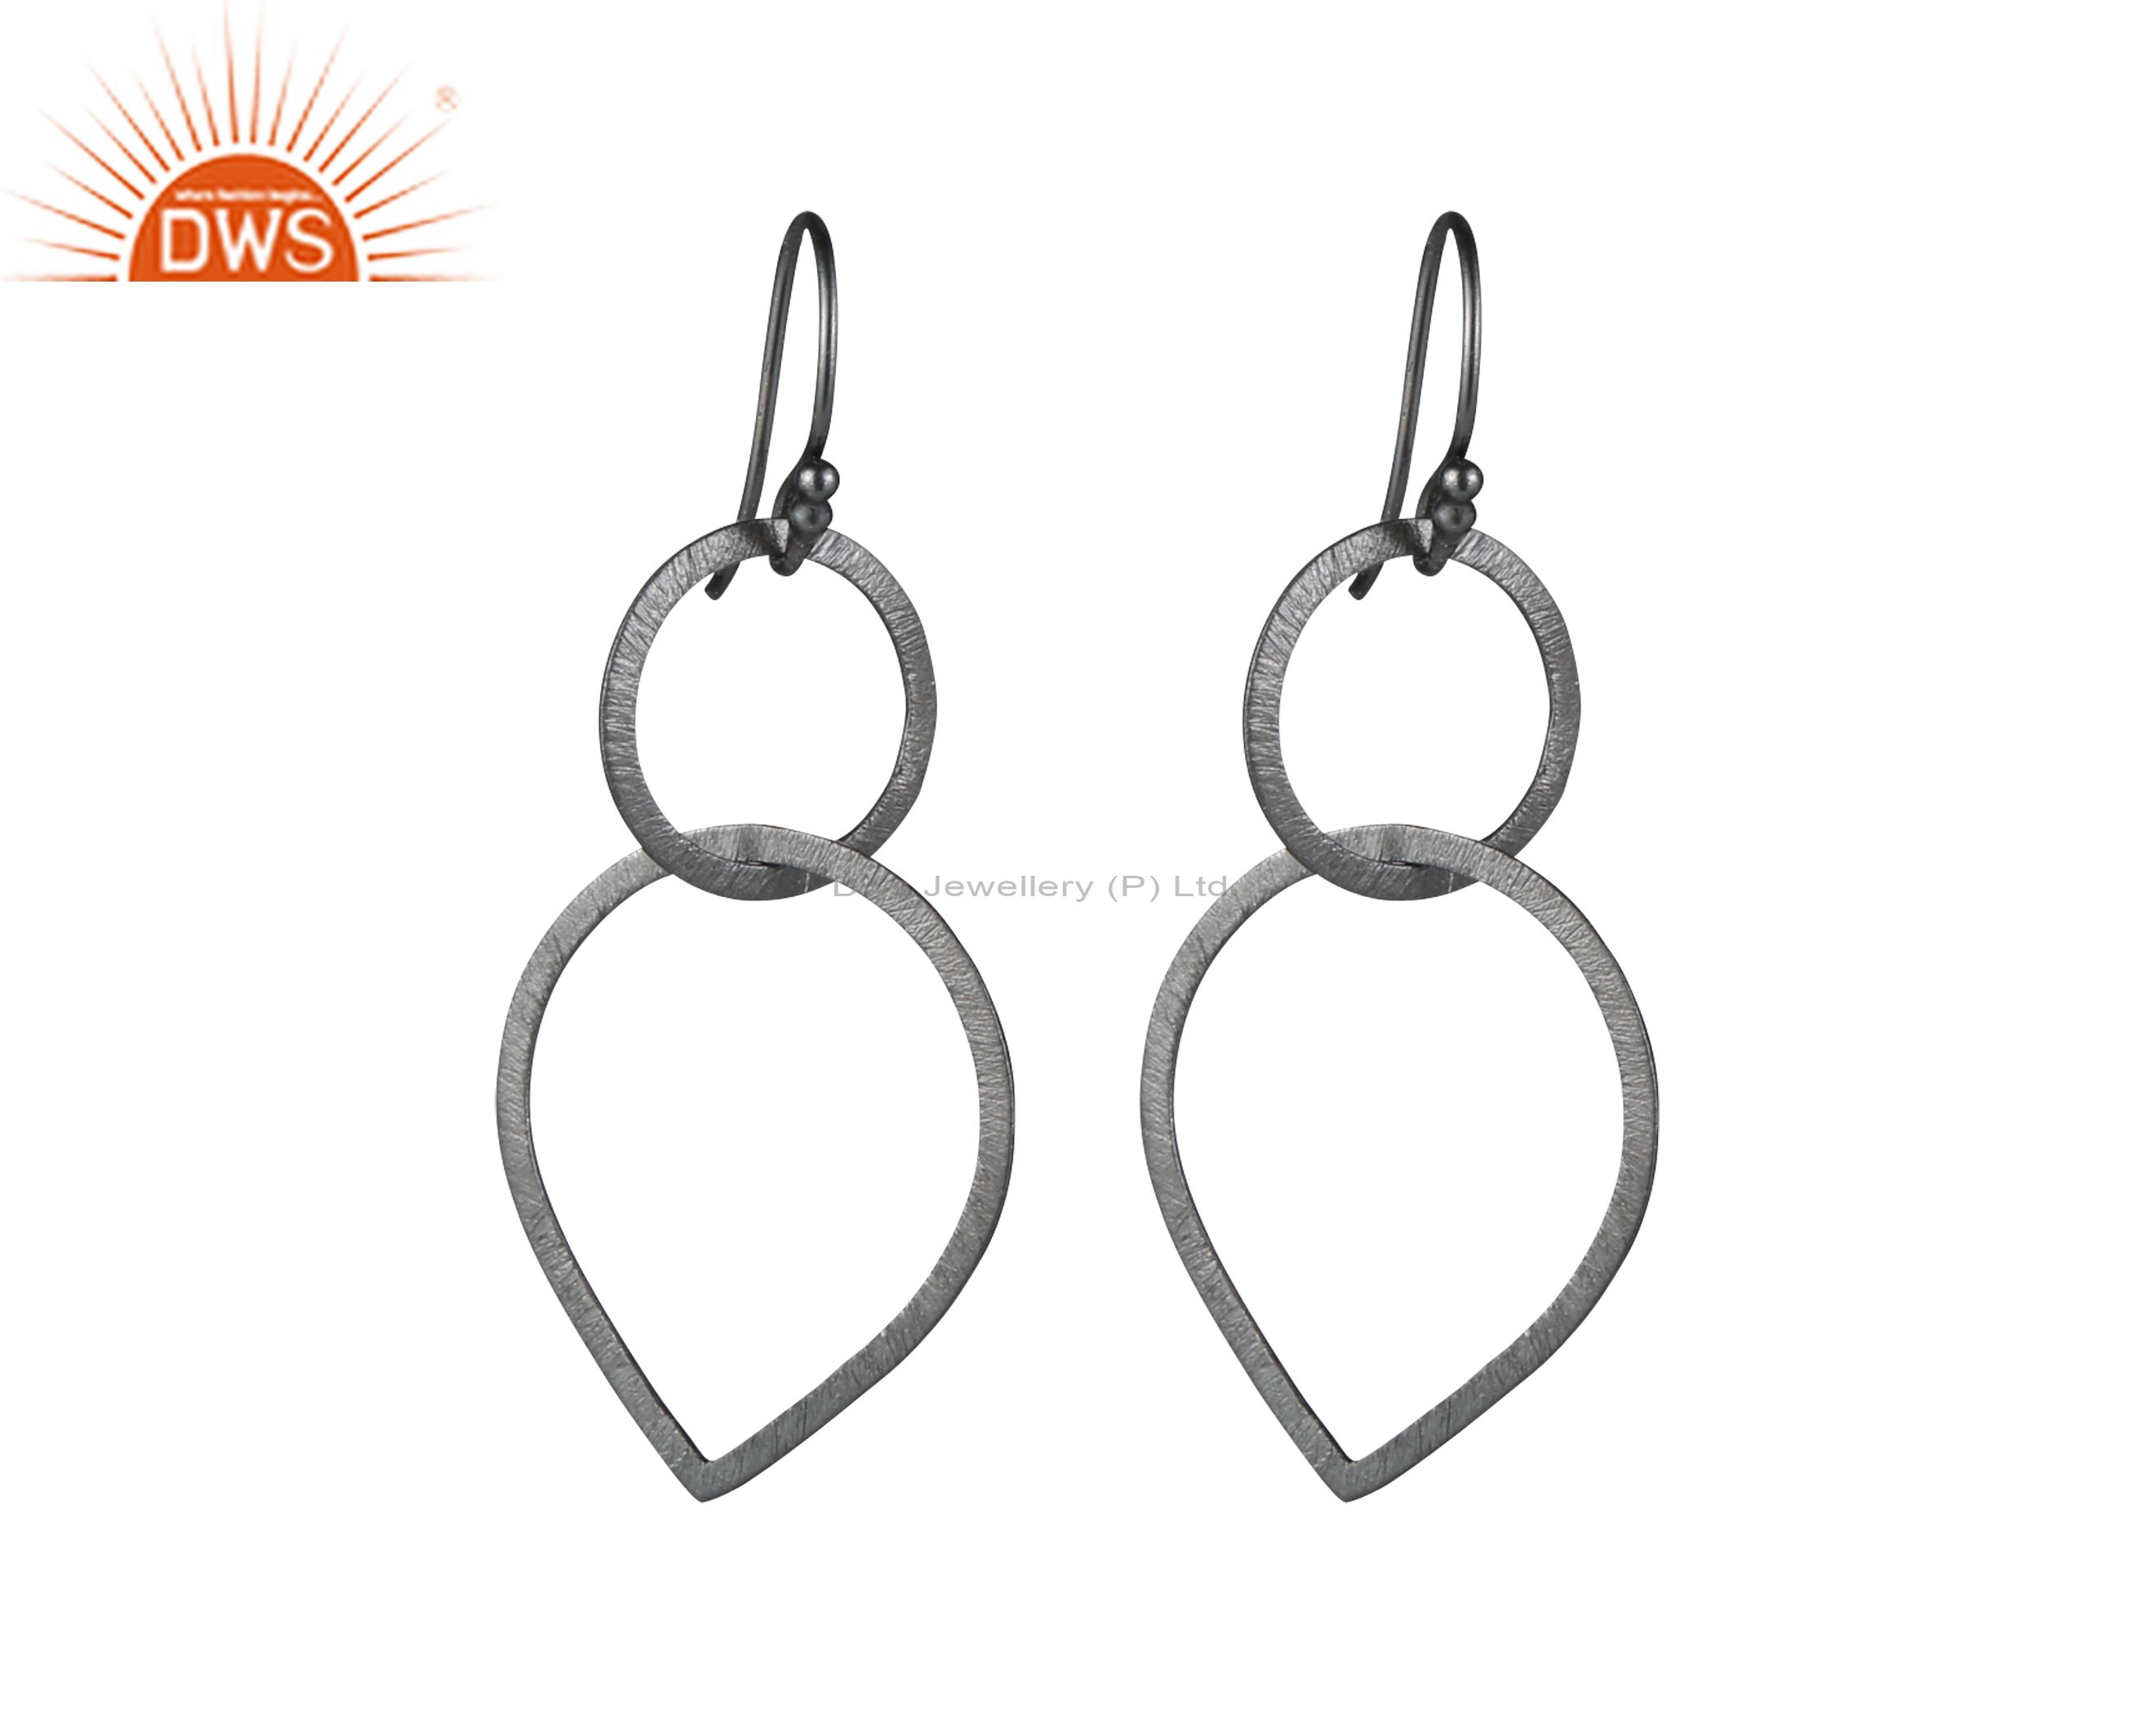 Handmade Sterling Silver With Oxidized Brushed Finish Open Circle Drop Earrings